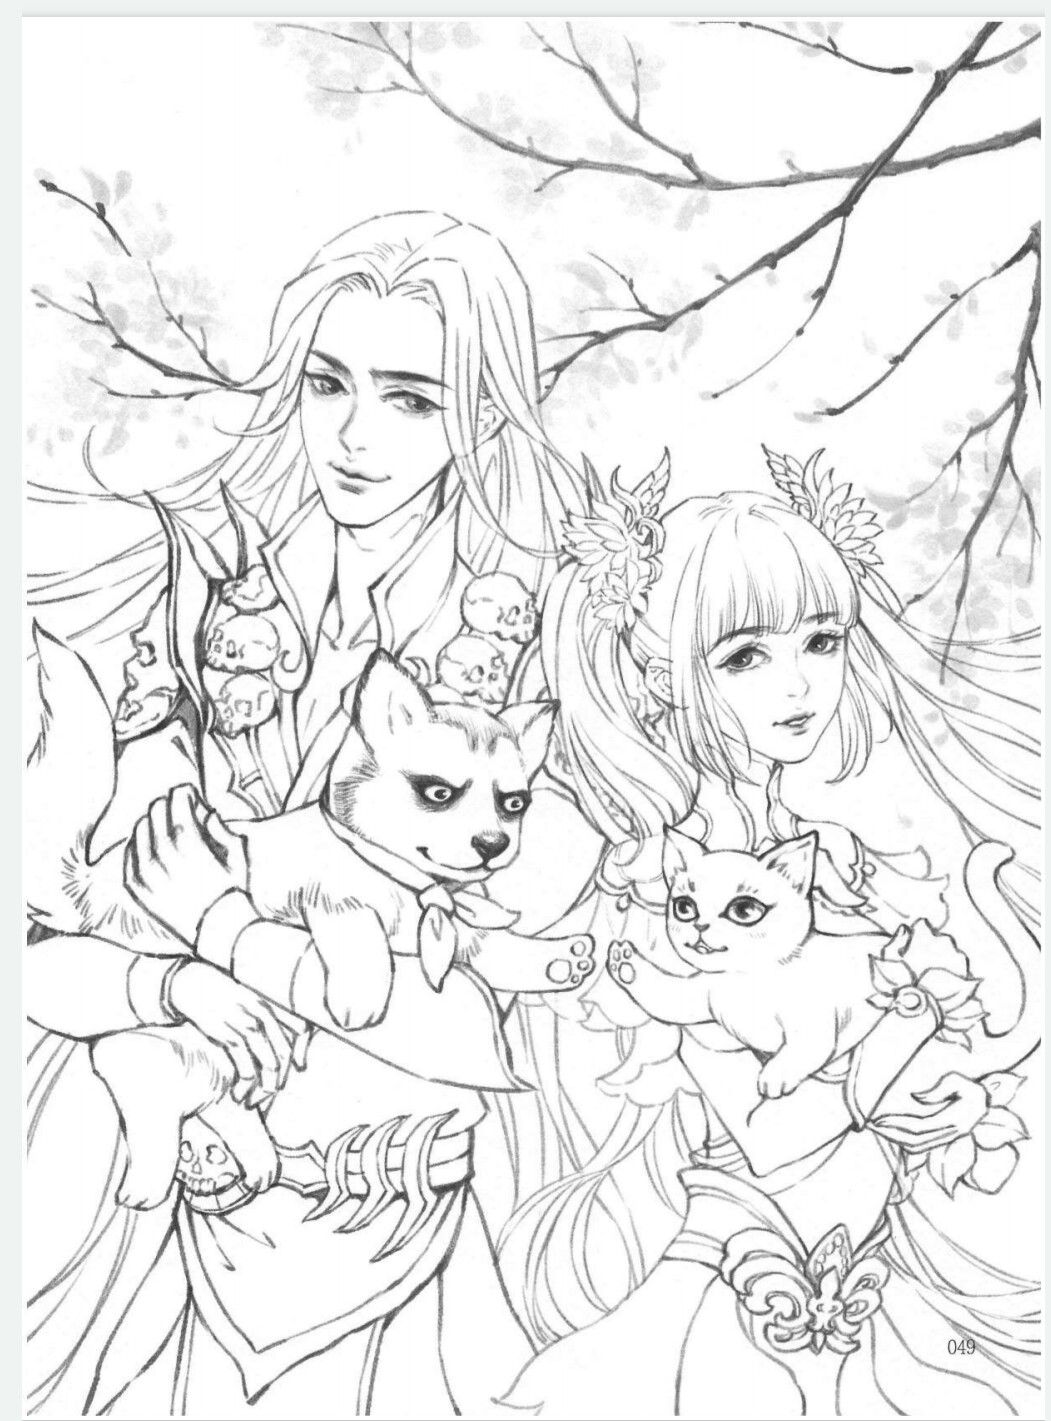 Pin By Lizbeth Cano On Coloring Pages Star Coloring Pages People Coloring Pages Coloring Books [ 1421 x 1051 Pixel ]